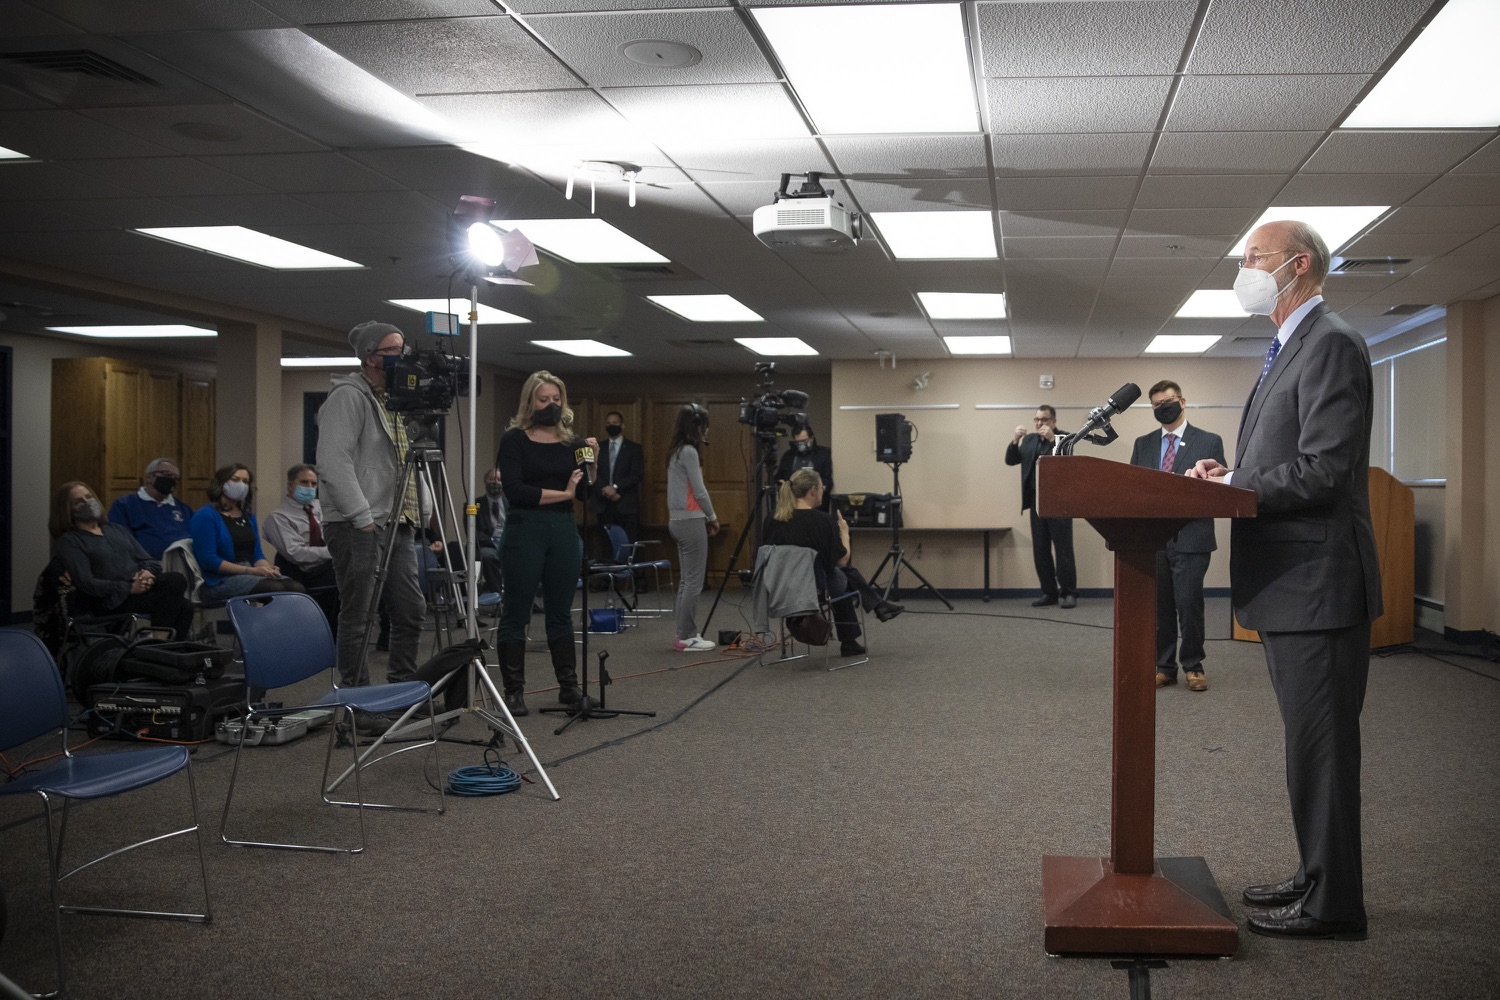 """<a href=""""https://filesource.wostreaming.net/commonwealthofpa/photo/18646_gov_vaccines_dz_002.jpg"""" target=""""_blank"""">⇣Download Photo<br></a>Pennsylvania Governor Tom Wolf speaking with the press.  After vaccinating more than 112,500 teachers and school staff in only about three weeks, Governor Tom Wolf visited Luzerne County today to announce the special vaccination initiative is a success and was completed ahead of schedule. The accomplishment is an important step to help more students and teachers safely return to classrooms across the state.  Kingston, PA - April 2, 2021"""